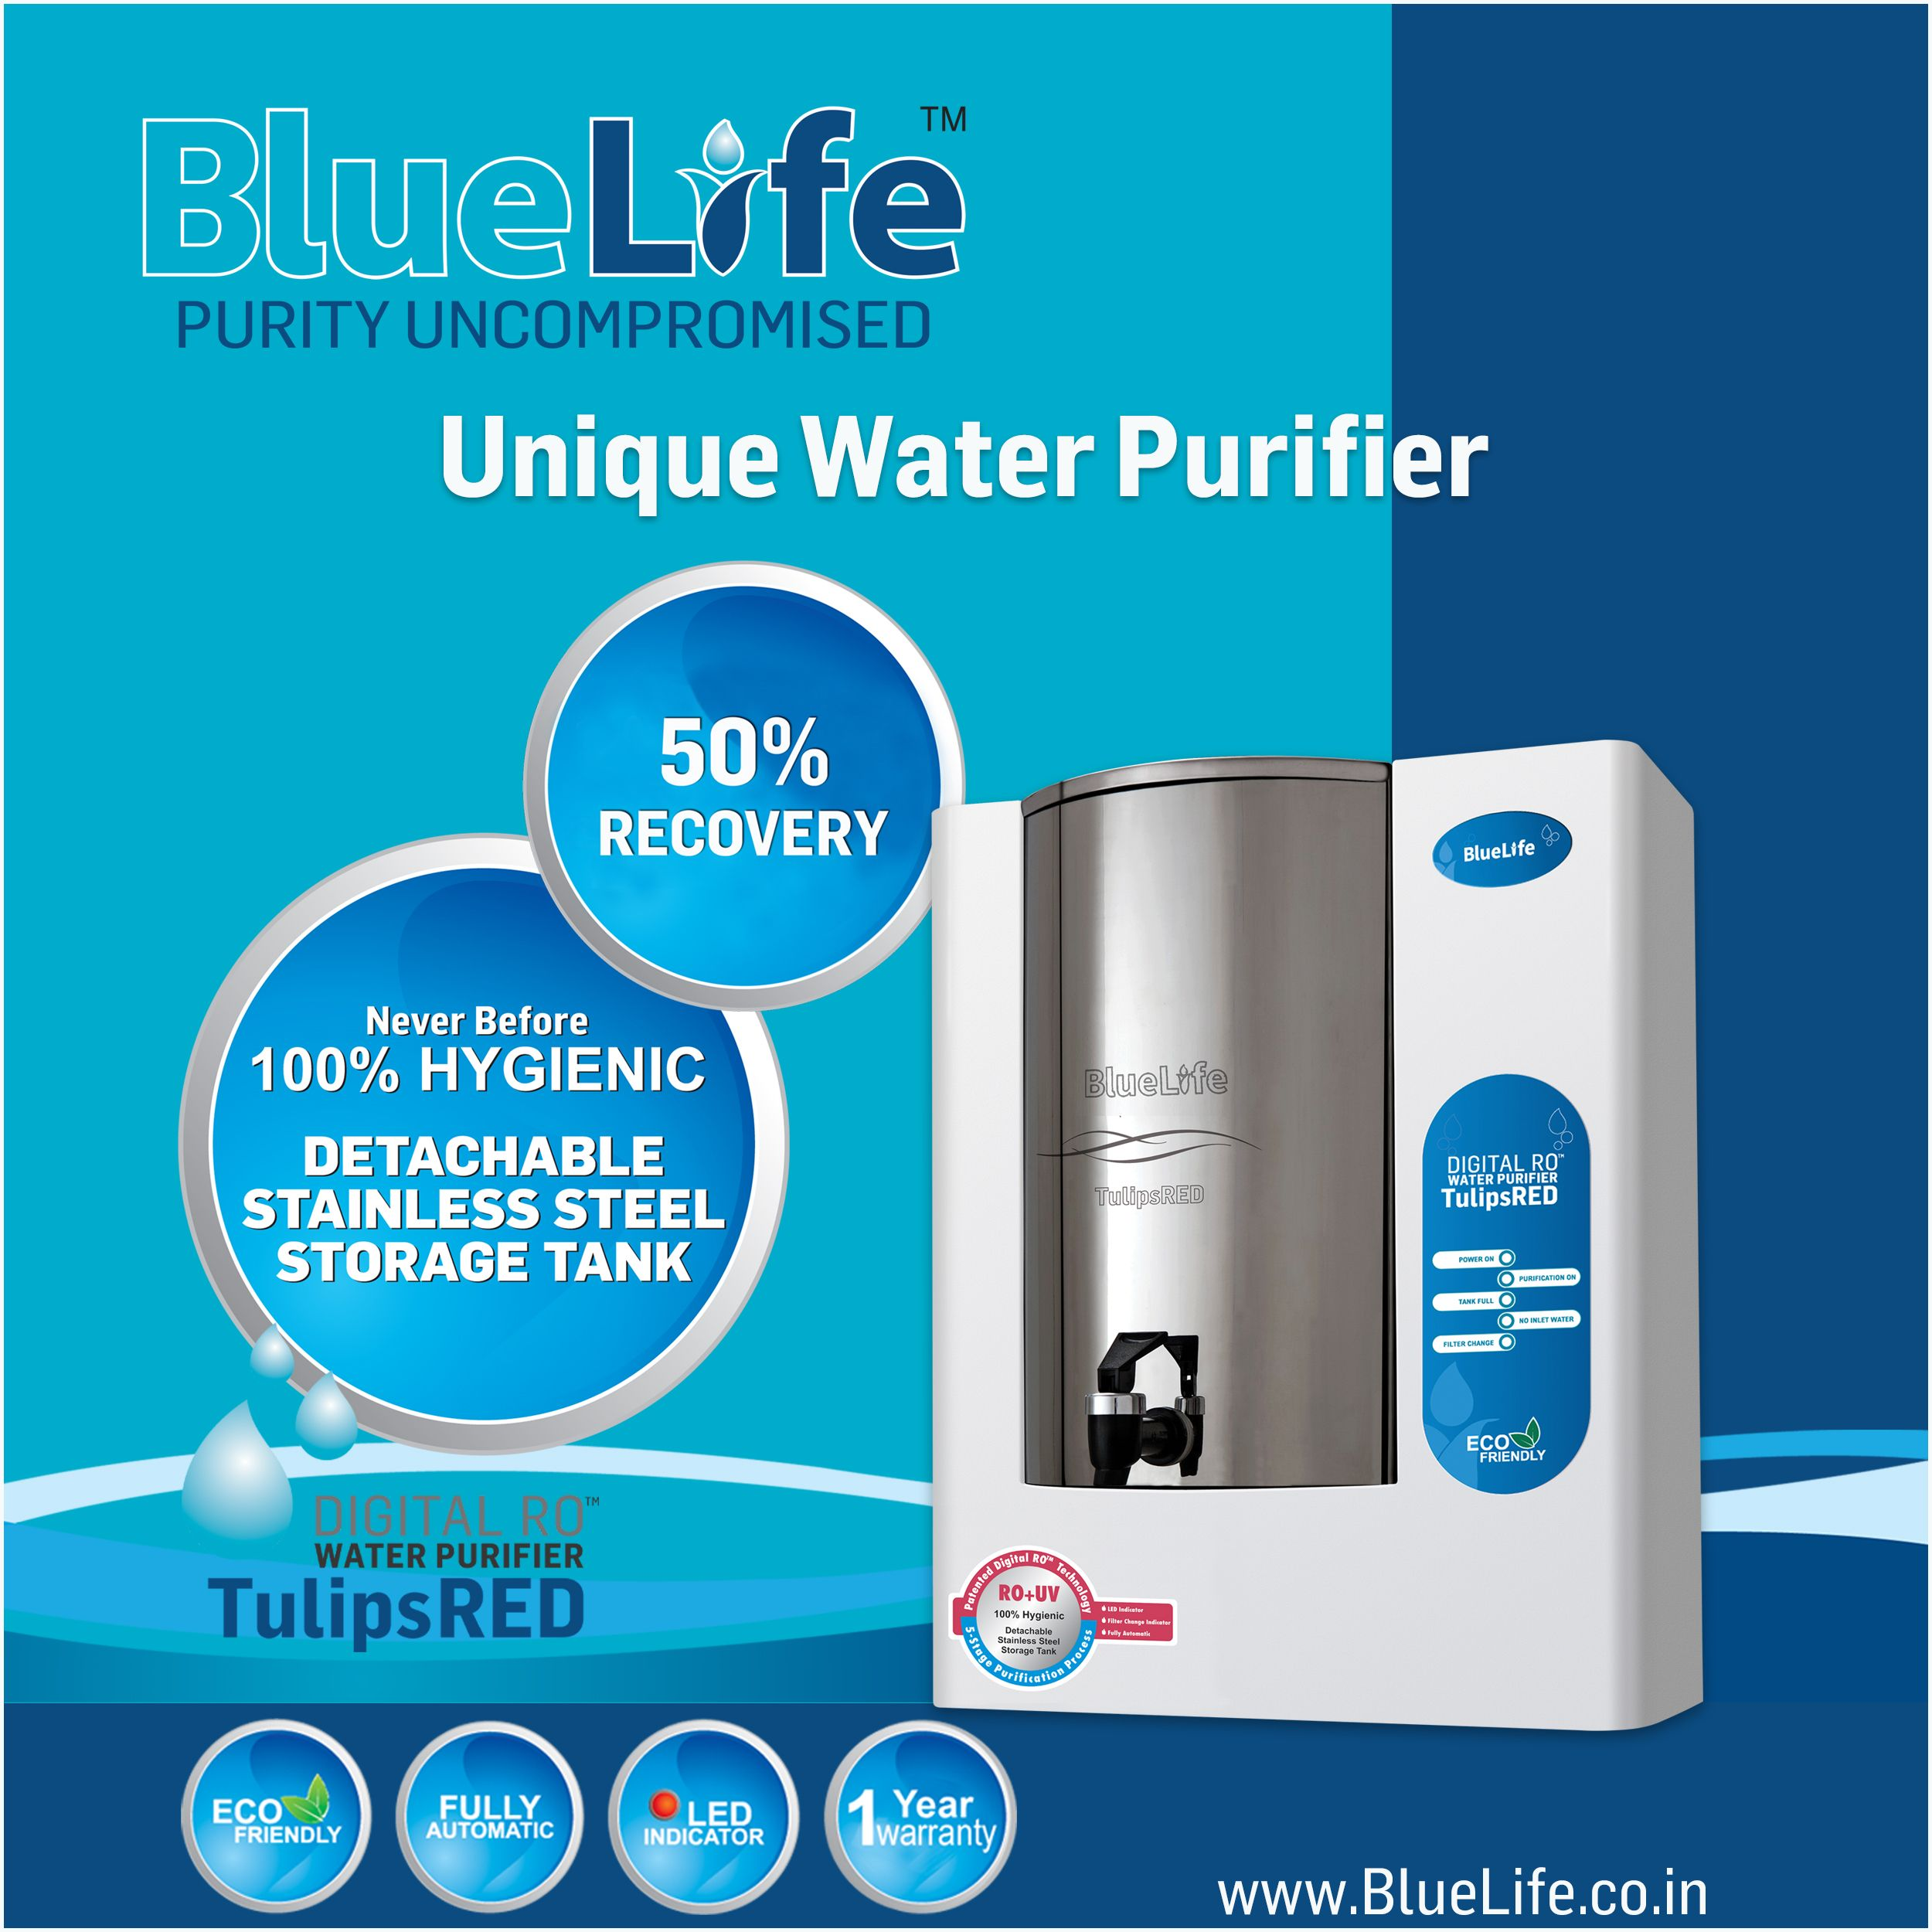 bluelifea tulipsred unique water purifier with digital ro technology